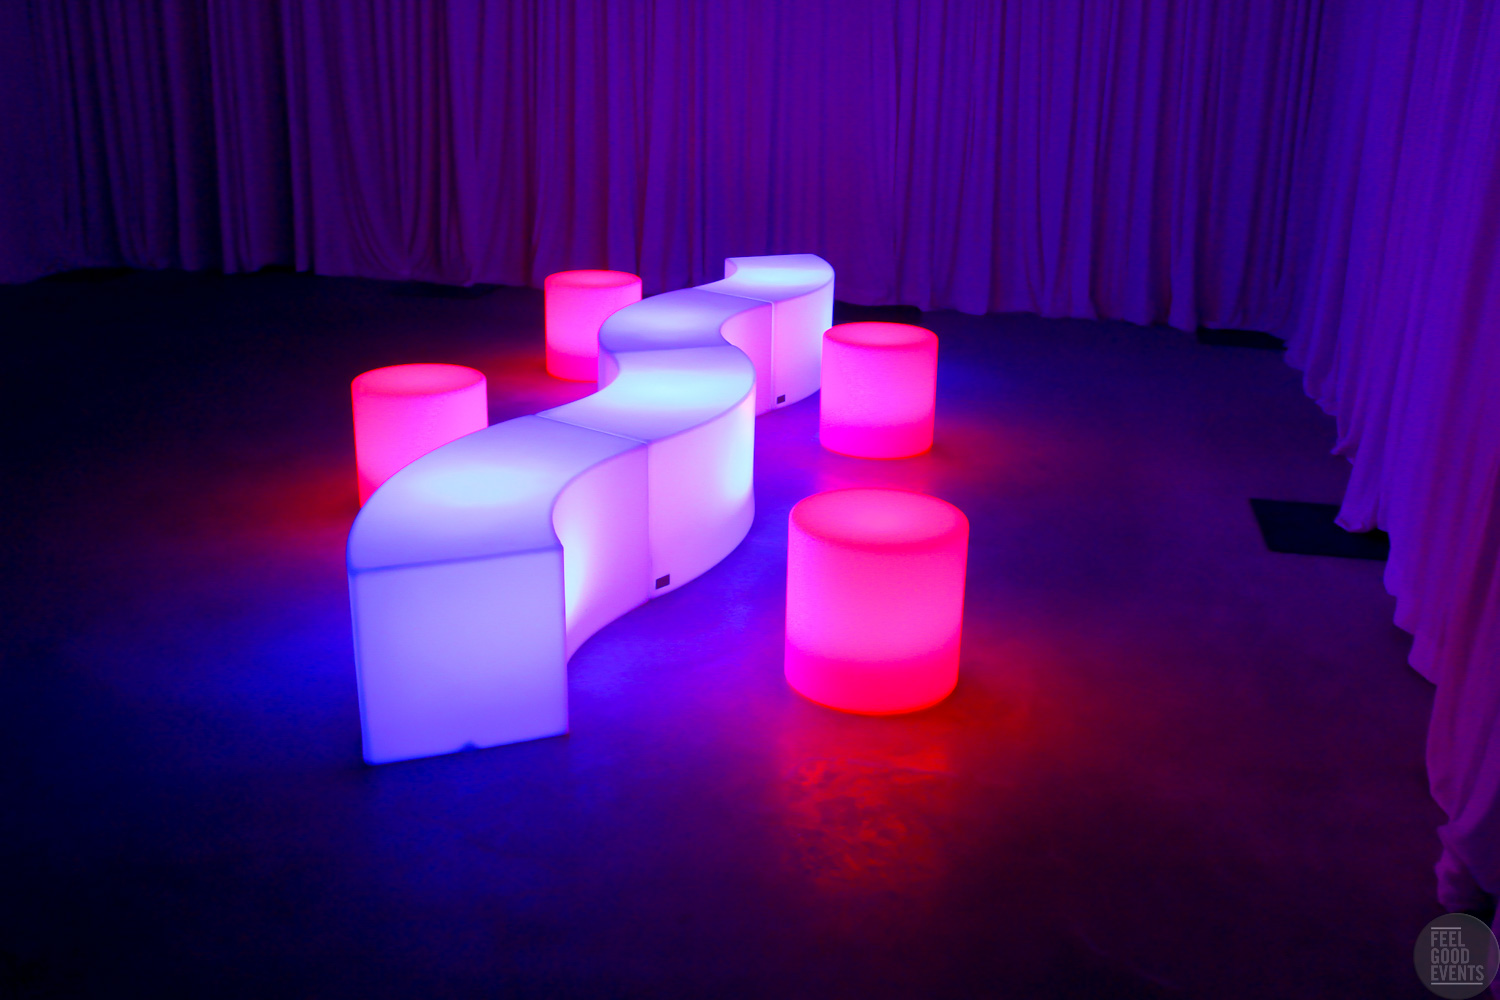 house-party-illuminated-furniture-bundle-2-hire-melbourne-side-angle-blue-and-pink-glow.